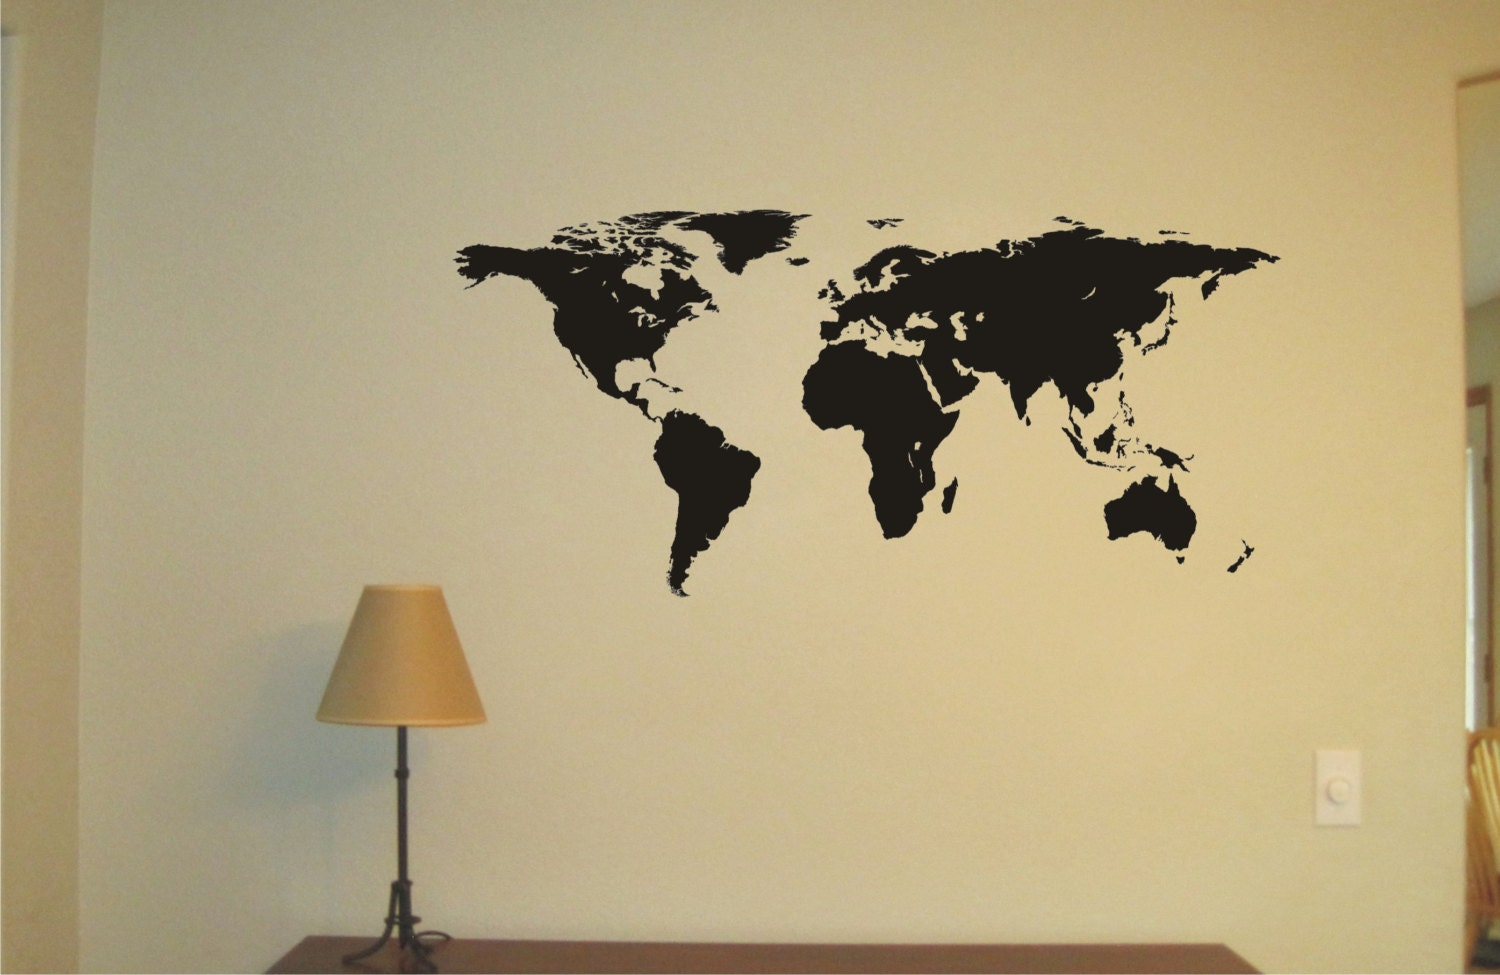 World map vinyl decal wall sticker wall tattoo zoom gumiabroncs Image collections